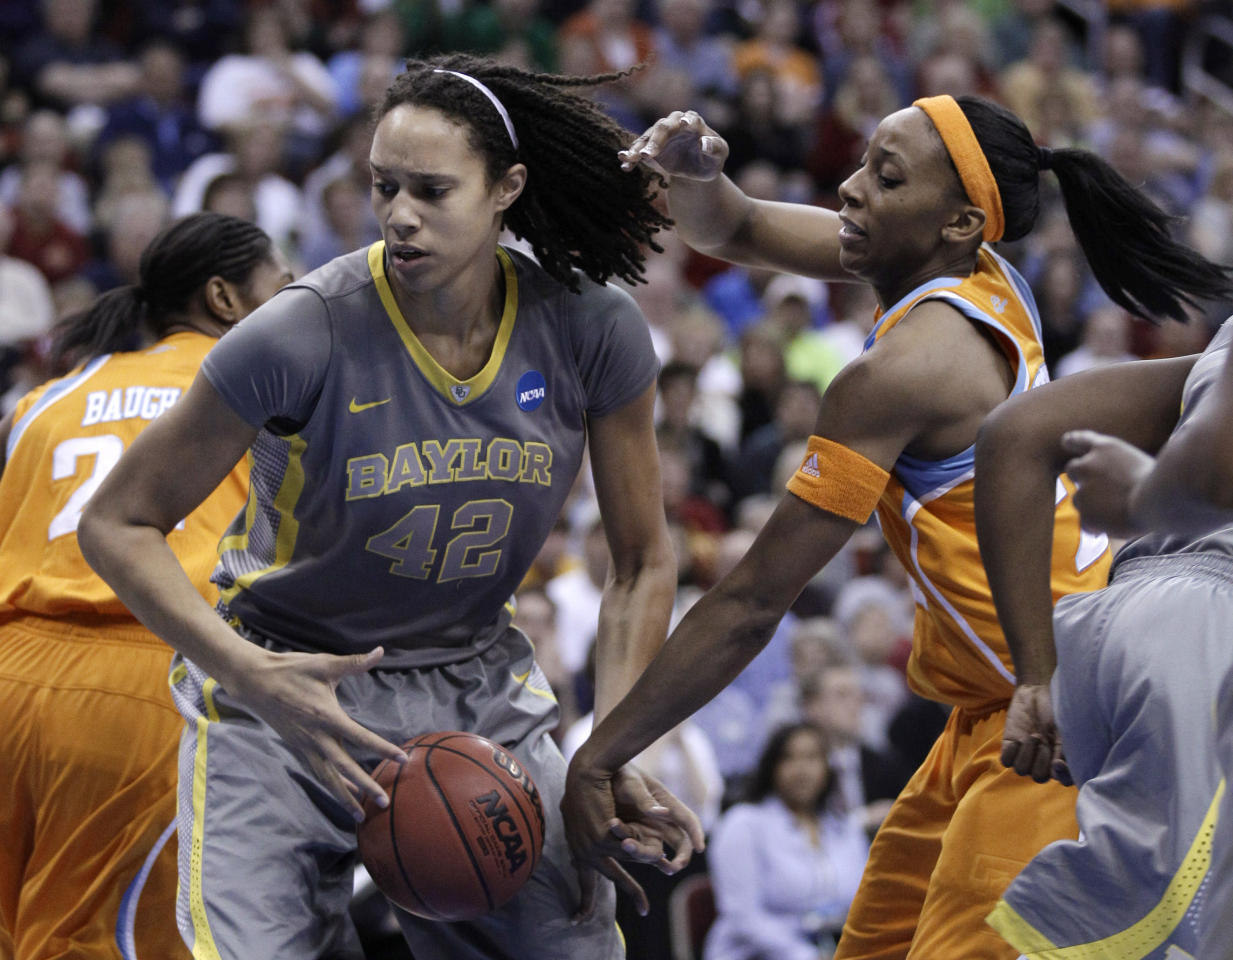 Baylor's Brittney Griner grabs a rebound in front of Tennessee's Glory Johnson during the first half of an NCAA women's college basketball tournament regional final, Monday, March 26, 2012, in Des Moines, Iowa. (AP Photo/Charlie Neibergall)